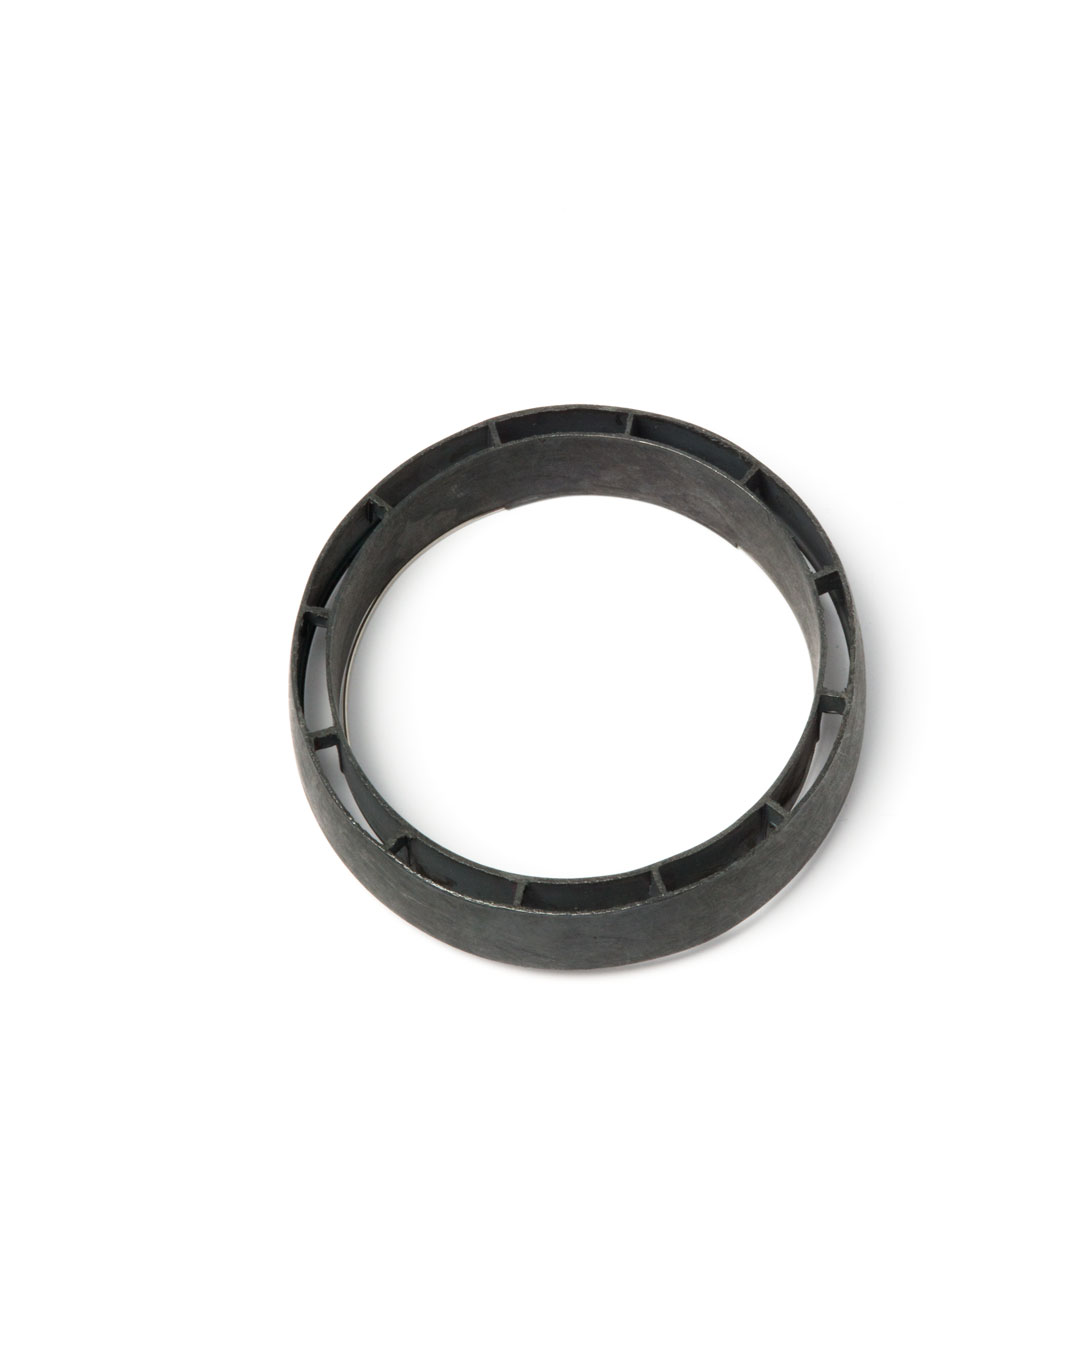 Winfried Krüger, untitled, 2008, brooch; oxidised silver, ø 80 mm, €1700